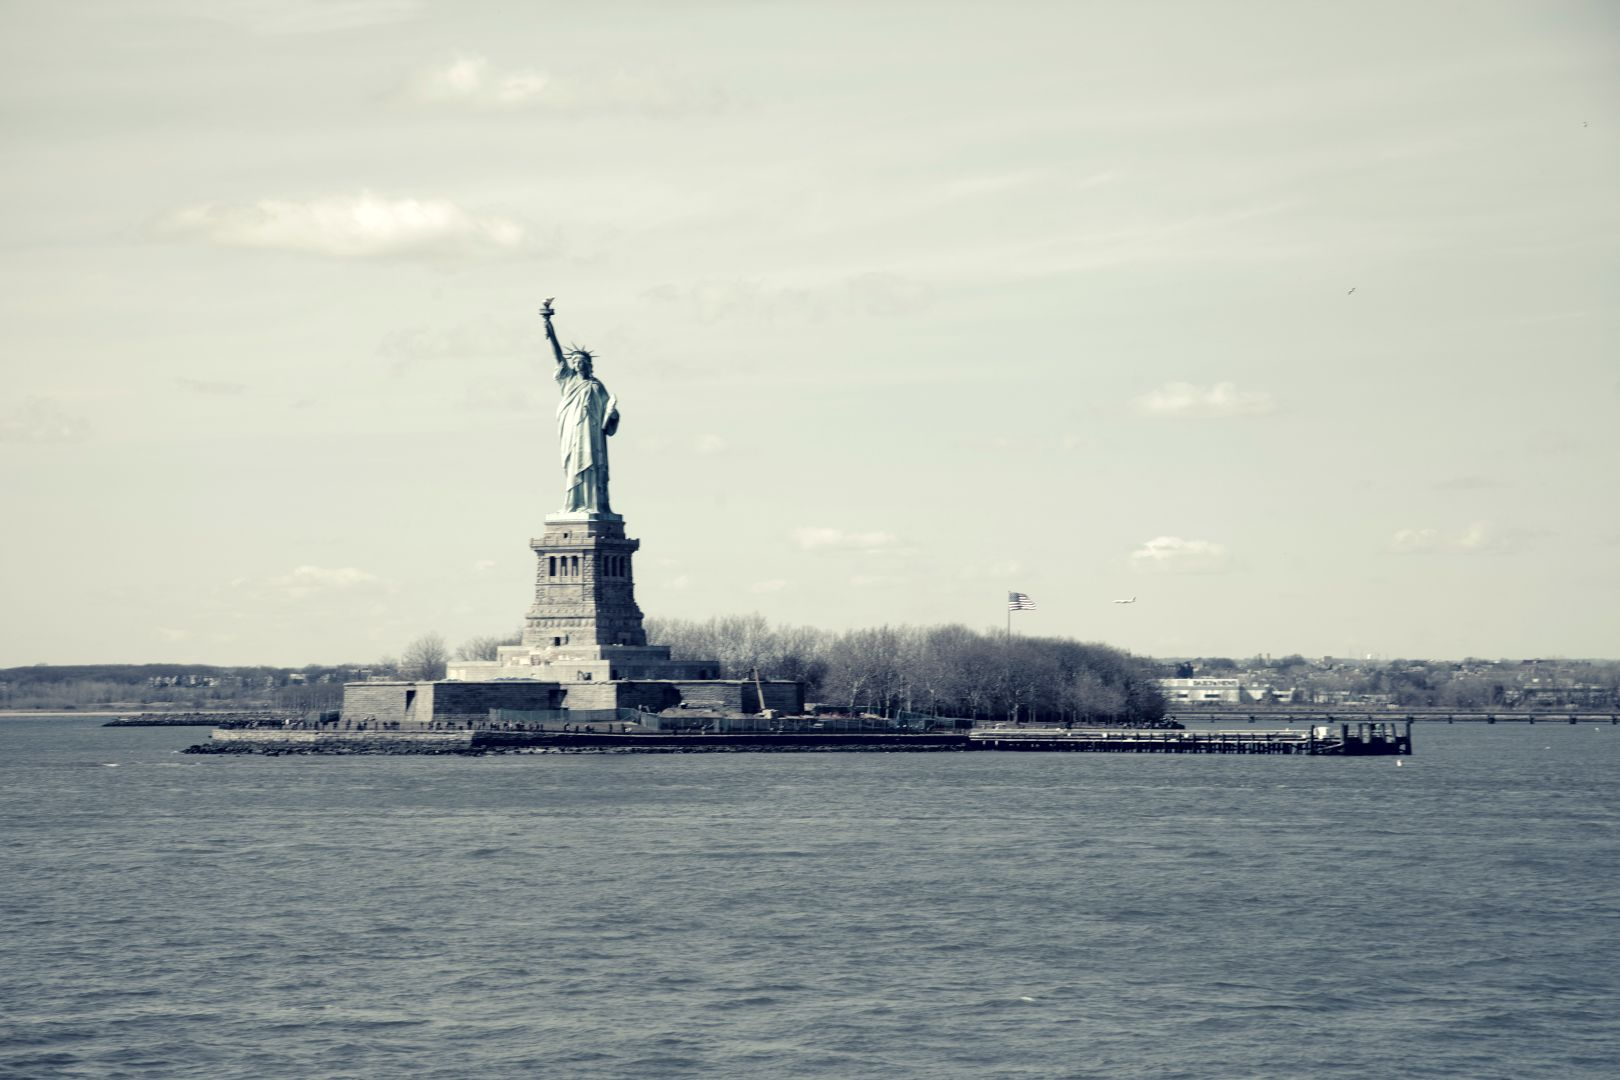 A photo of New York City Statue Of Liberty